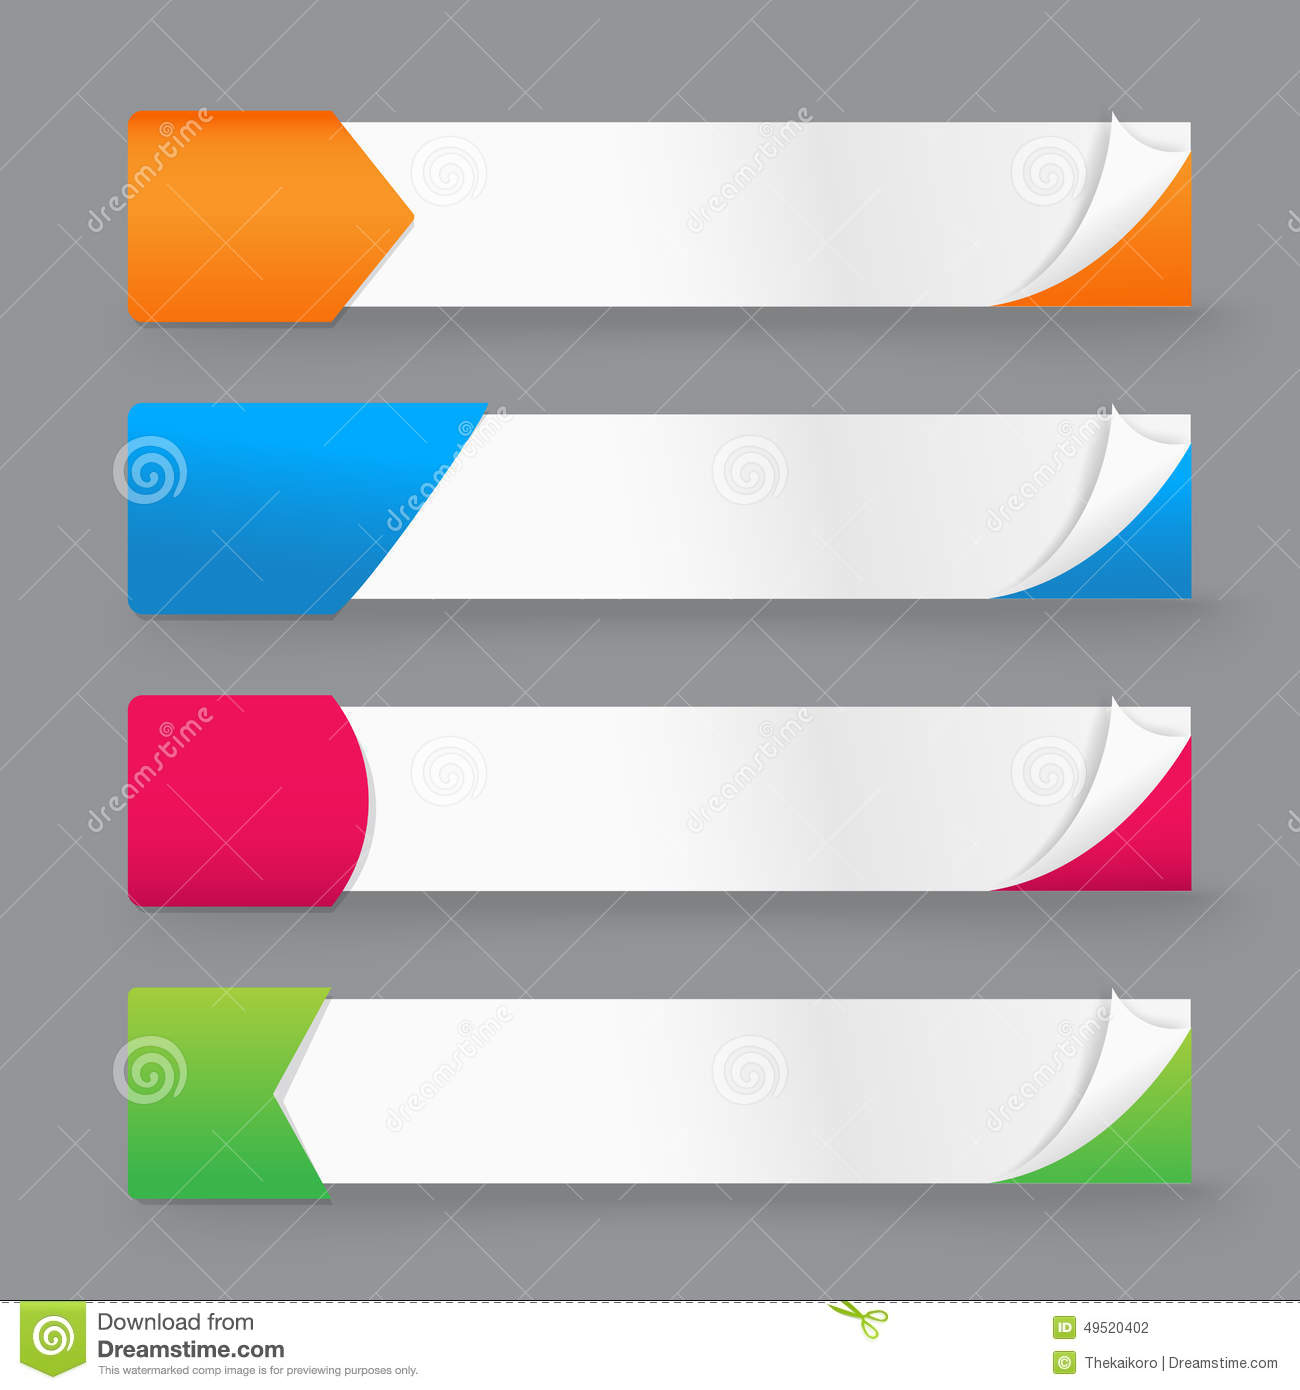 banner paper Find product information, ratings and reviews for elmers boardmate 24x75 paper banner online on targetcom.